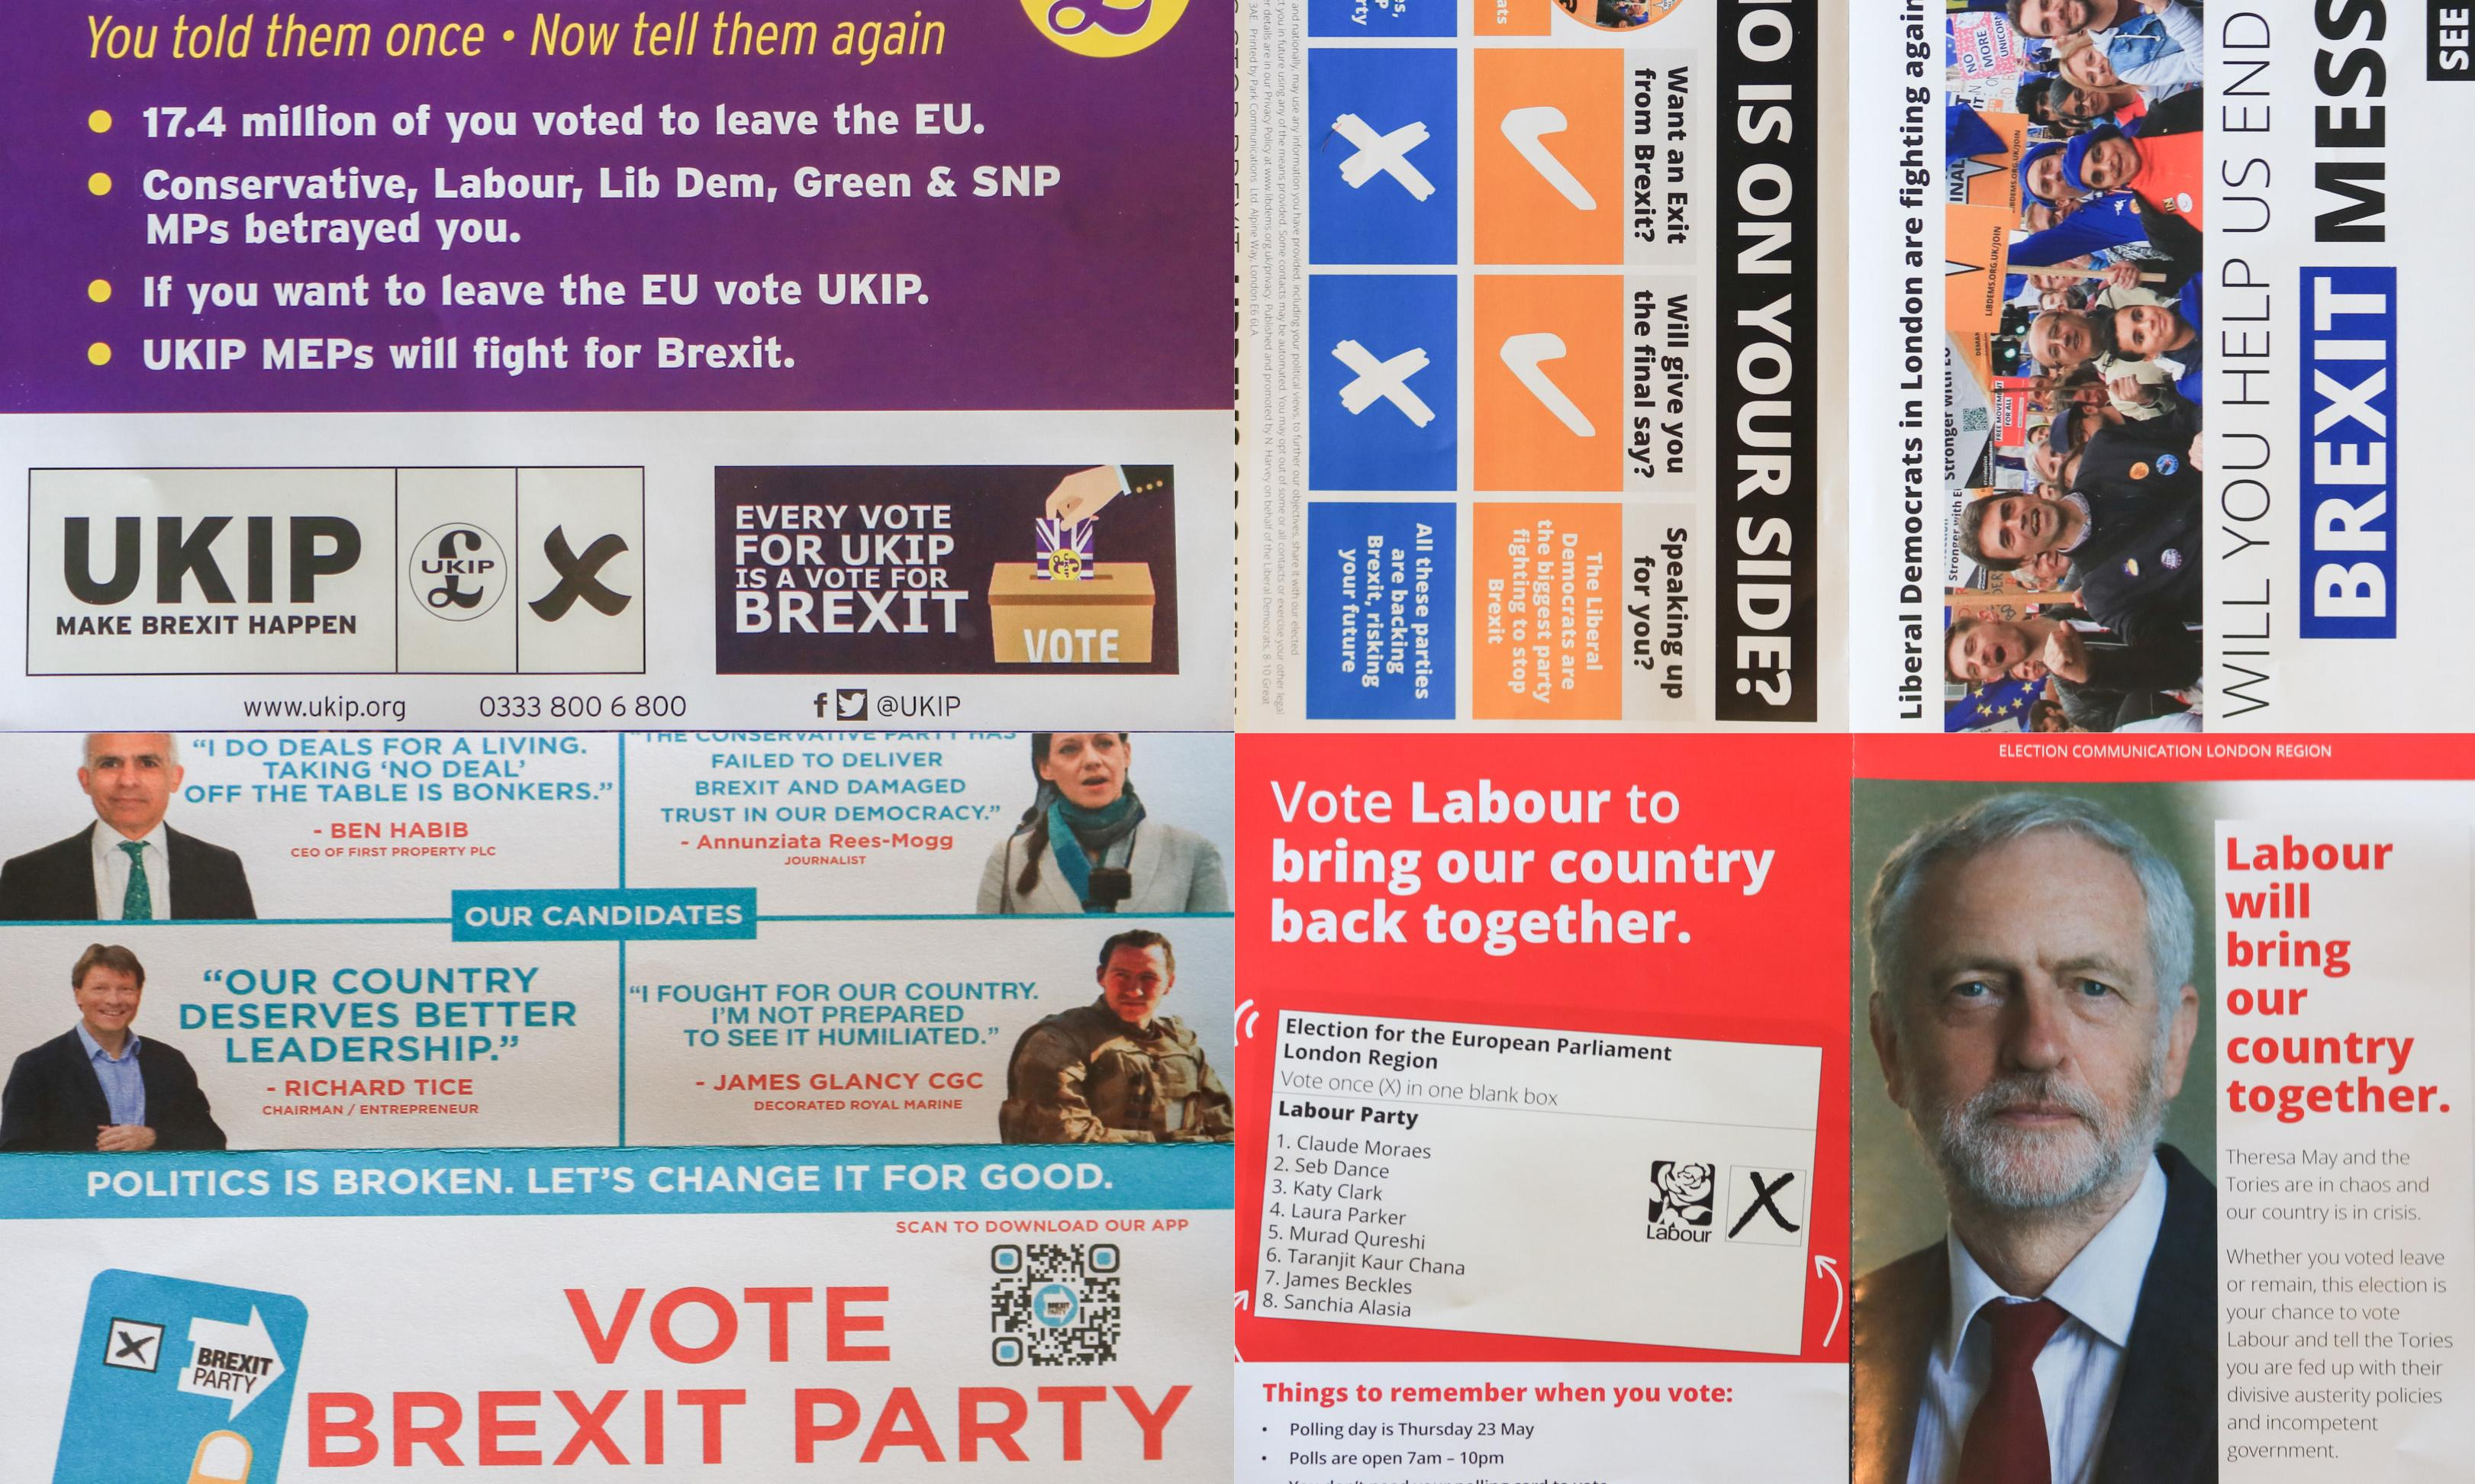 European elections 2019: am I registered to vote and why am I getting those leaflets?